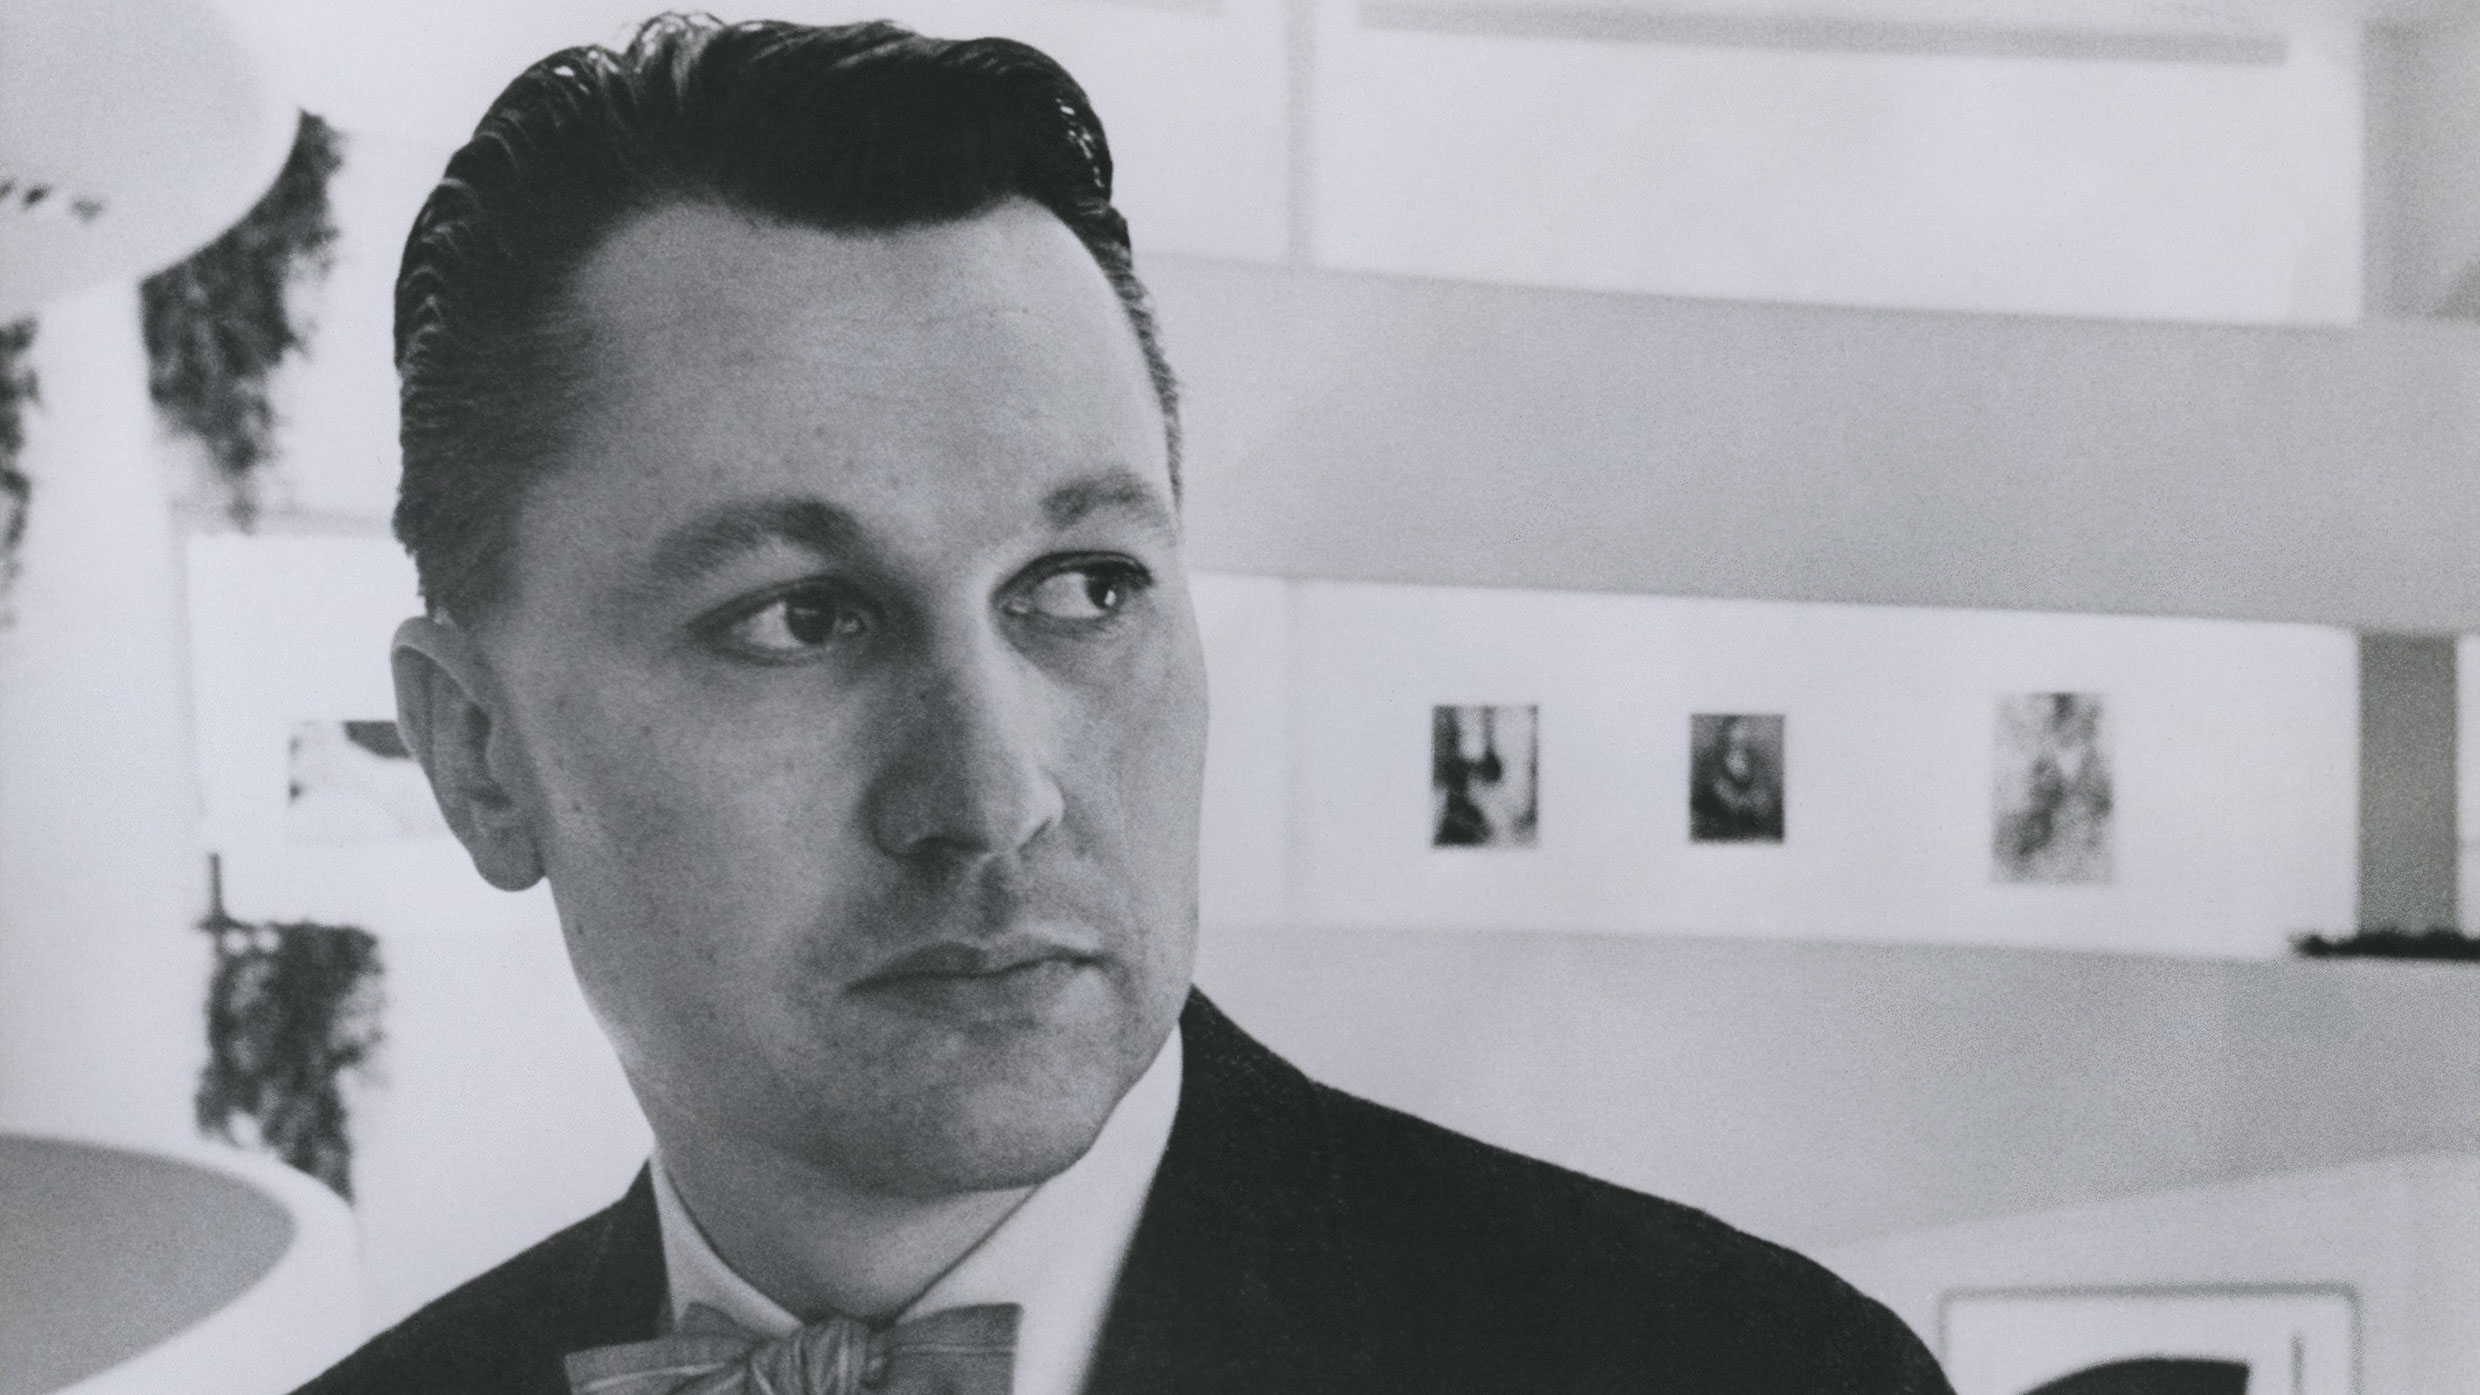 Thomas Messer, director of the Solomon R. Guggenheim Museum from 1961–1988. Thomas M. Messer records. A0007. Solomon R. Guggenheim Museum Archives. New York, NY